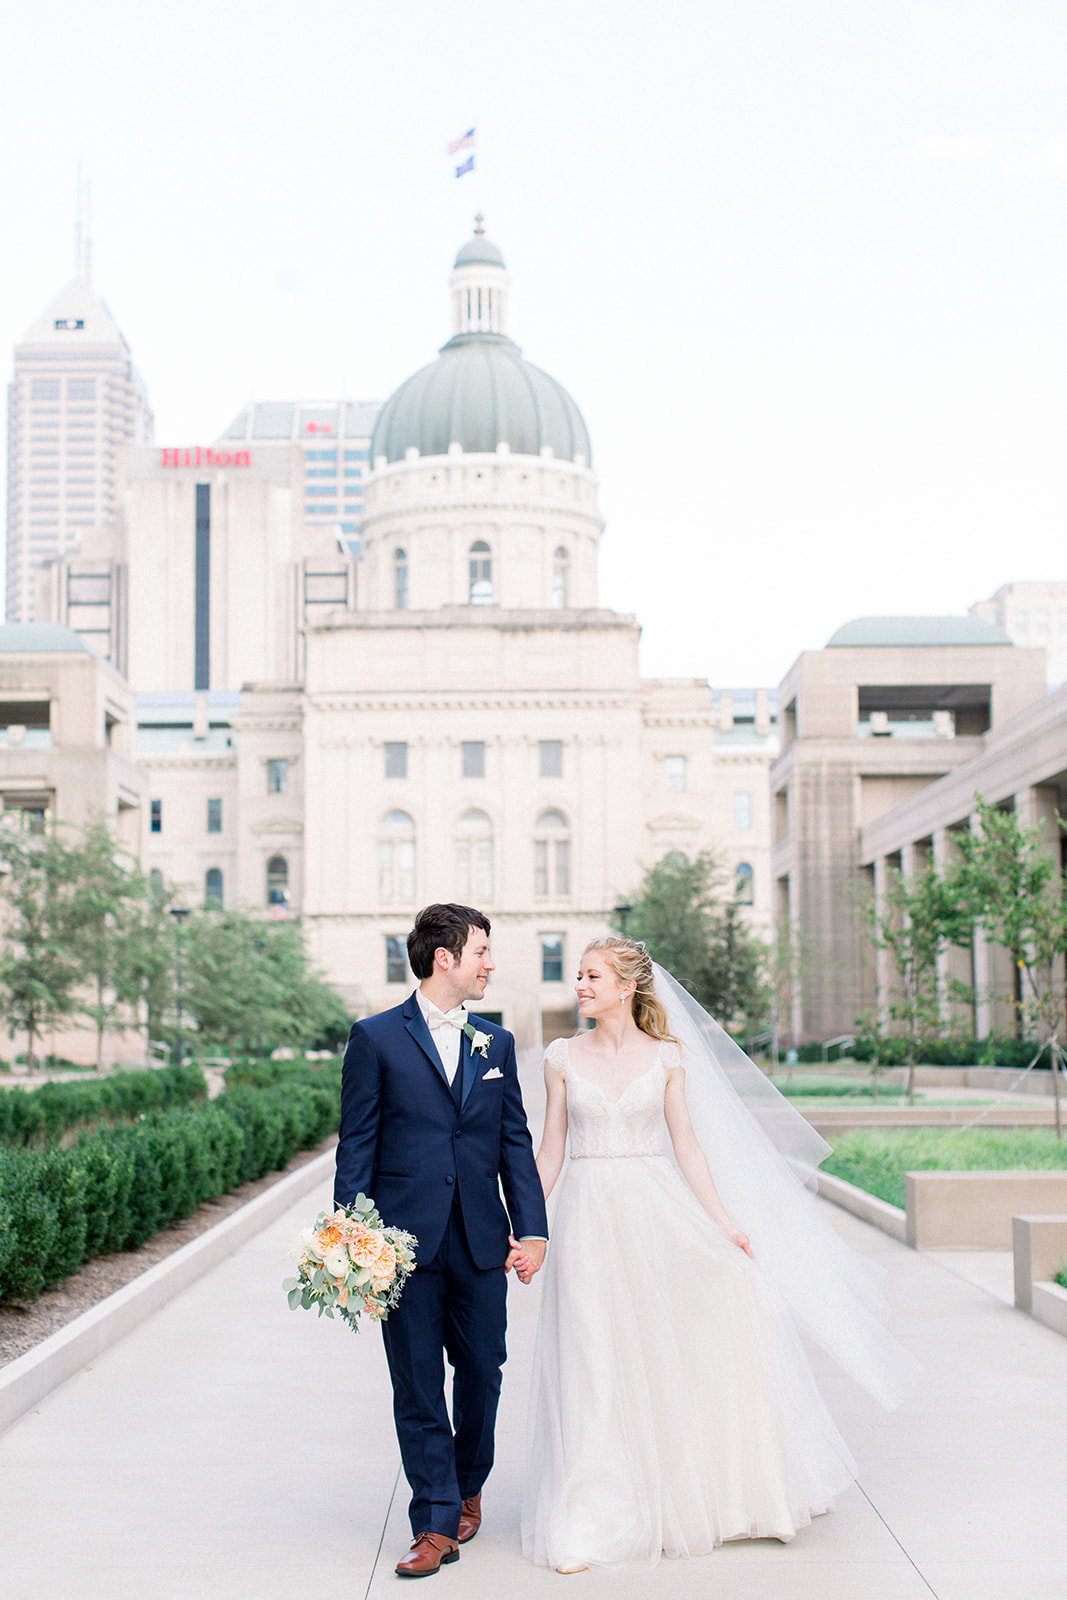 Lisa+Chris-indianapolis-wedding-jenn-plumlee-photography17